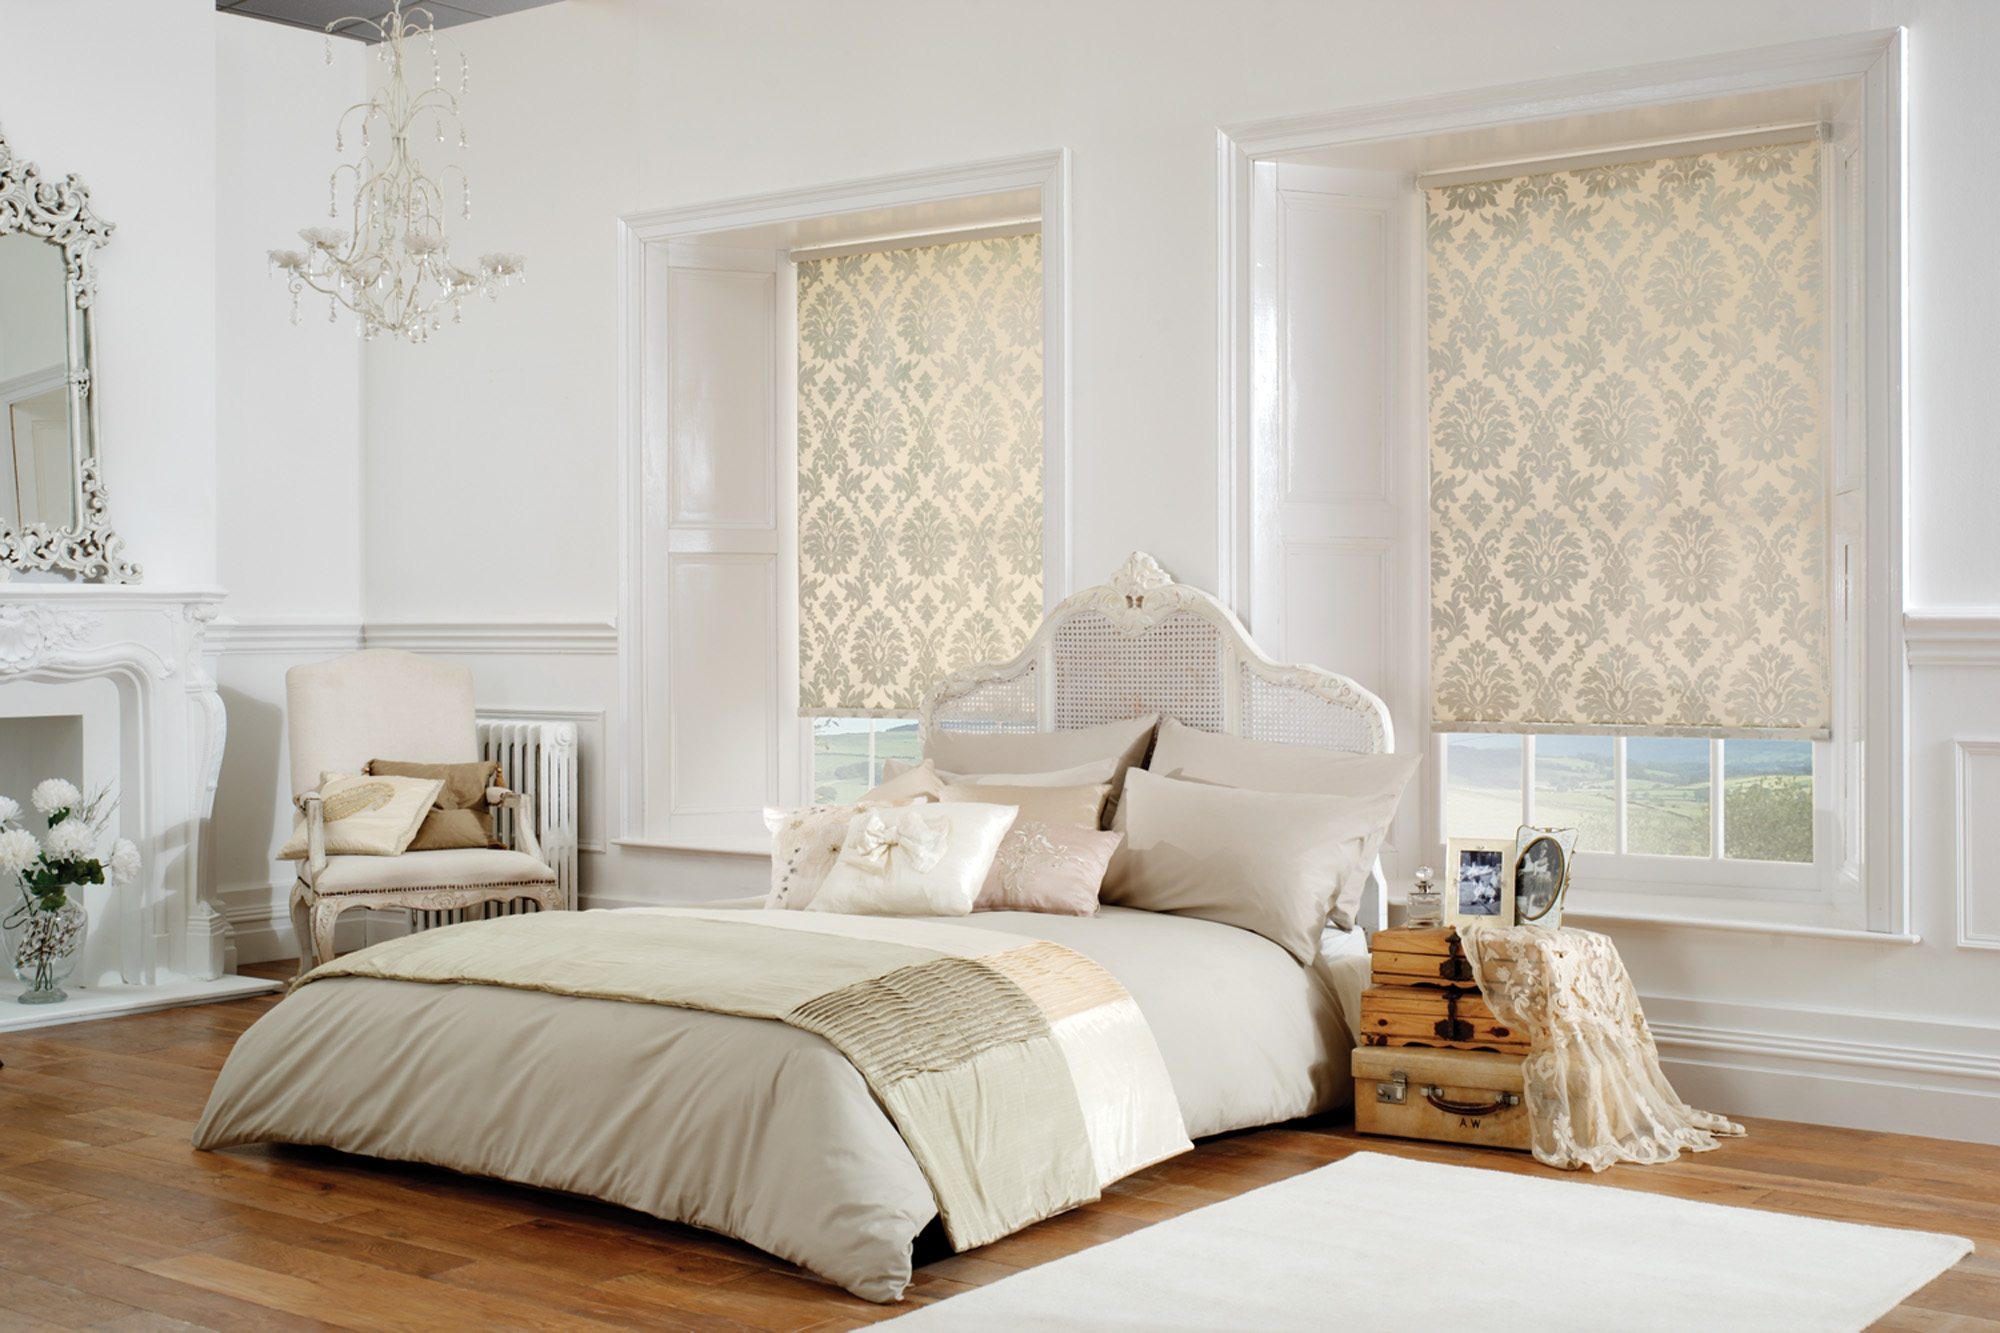 Galaxy Blinds Roman Blinds Intended For Gold Roman Blinds (View 6 of 15)